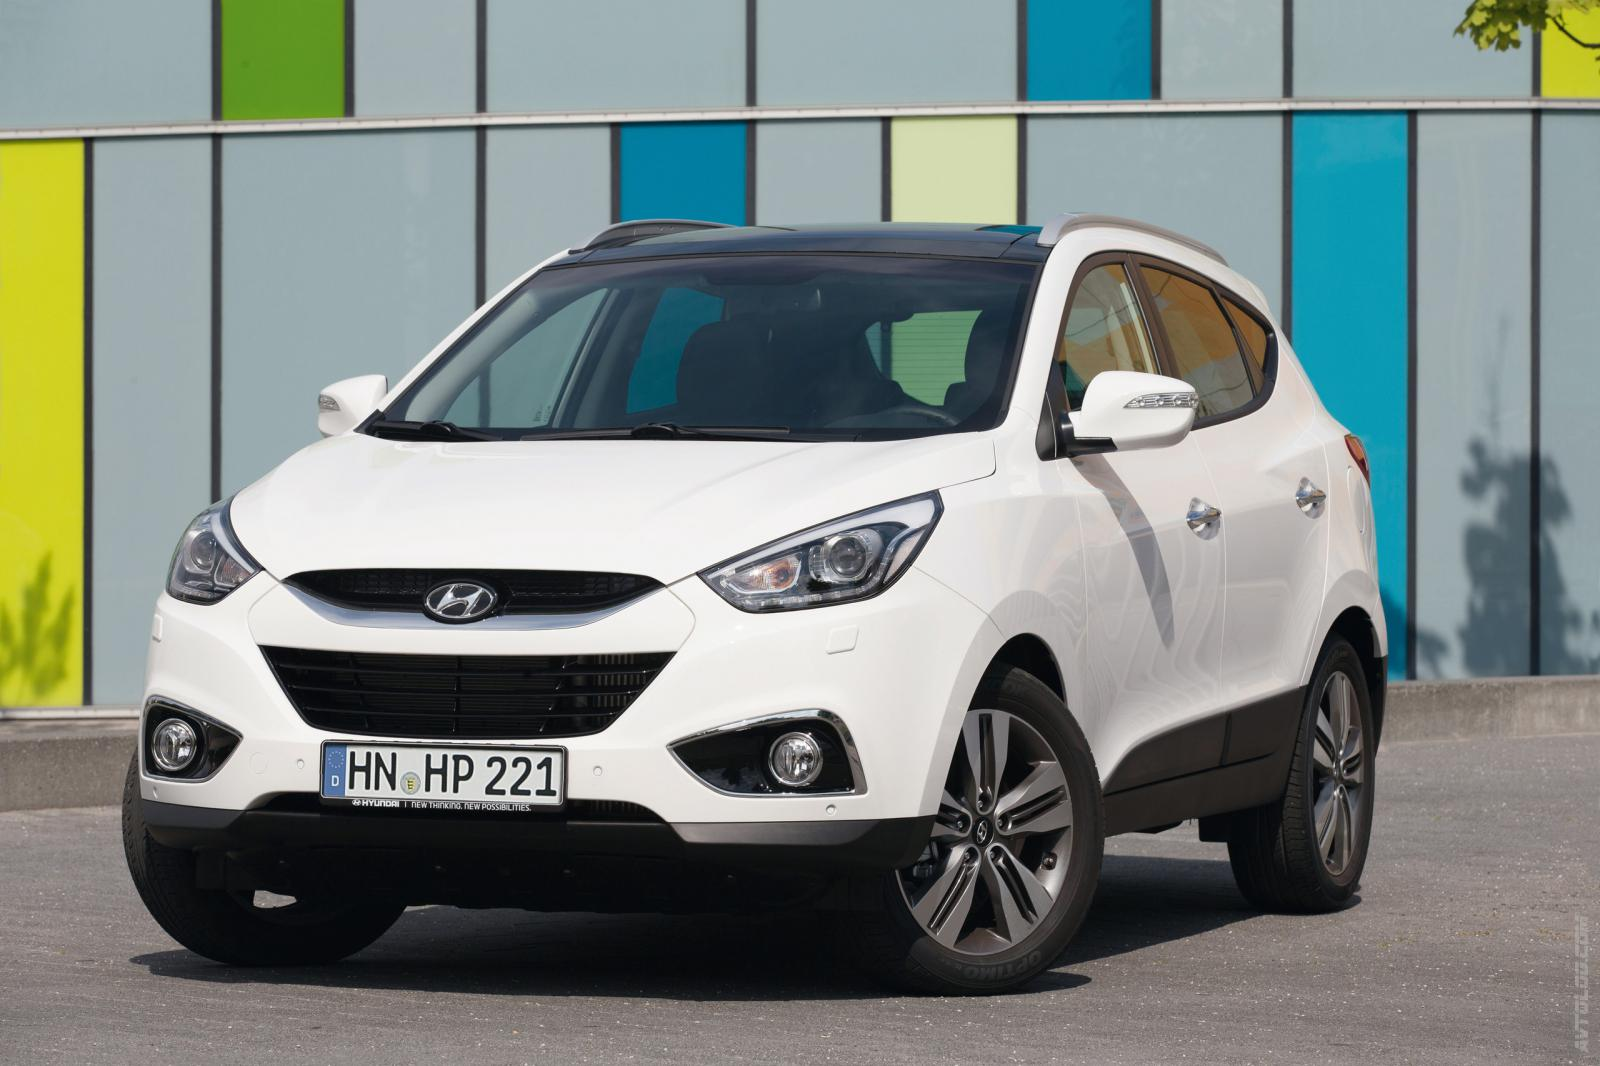 Hyundai ix35 2.0 2013 photo - 5